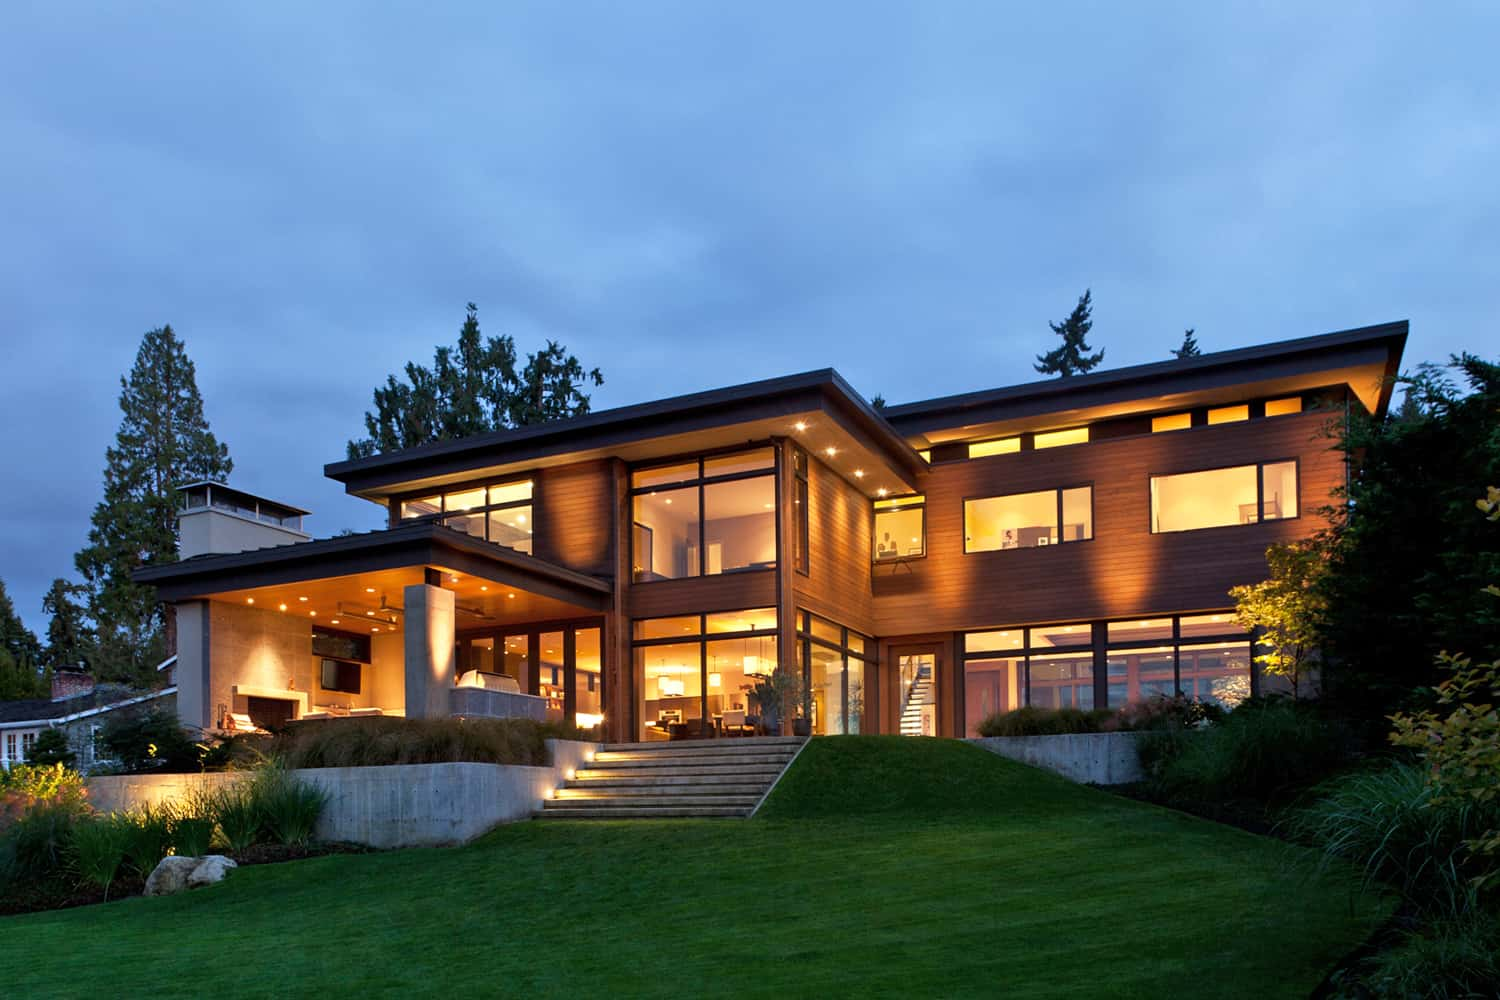 Modern Lake House Design: Contemporary Mercer Island Lake House Infused With Asian